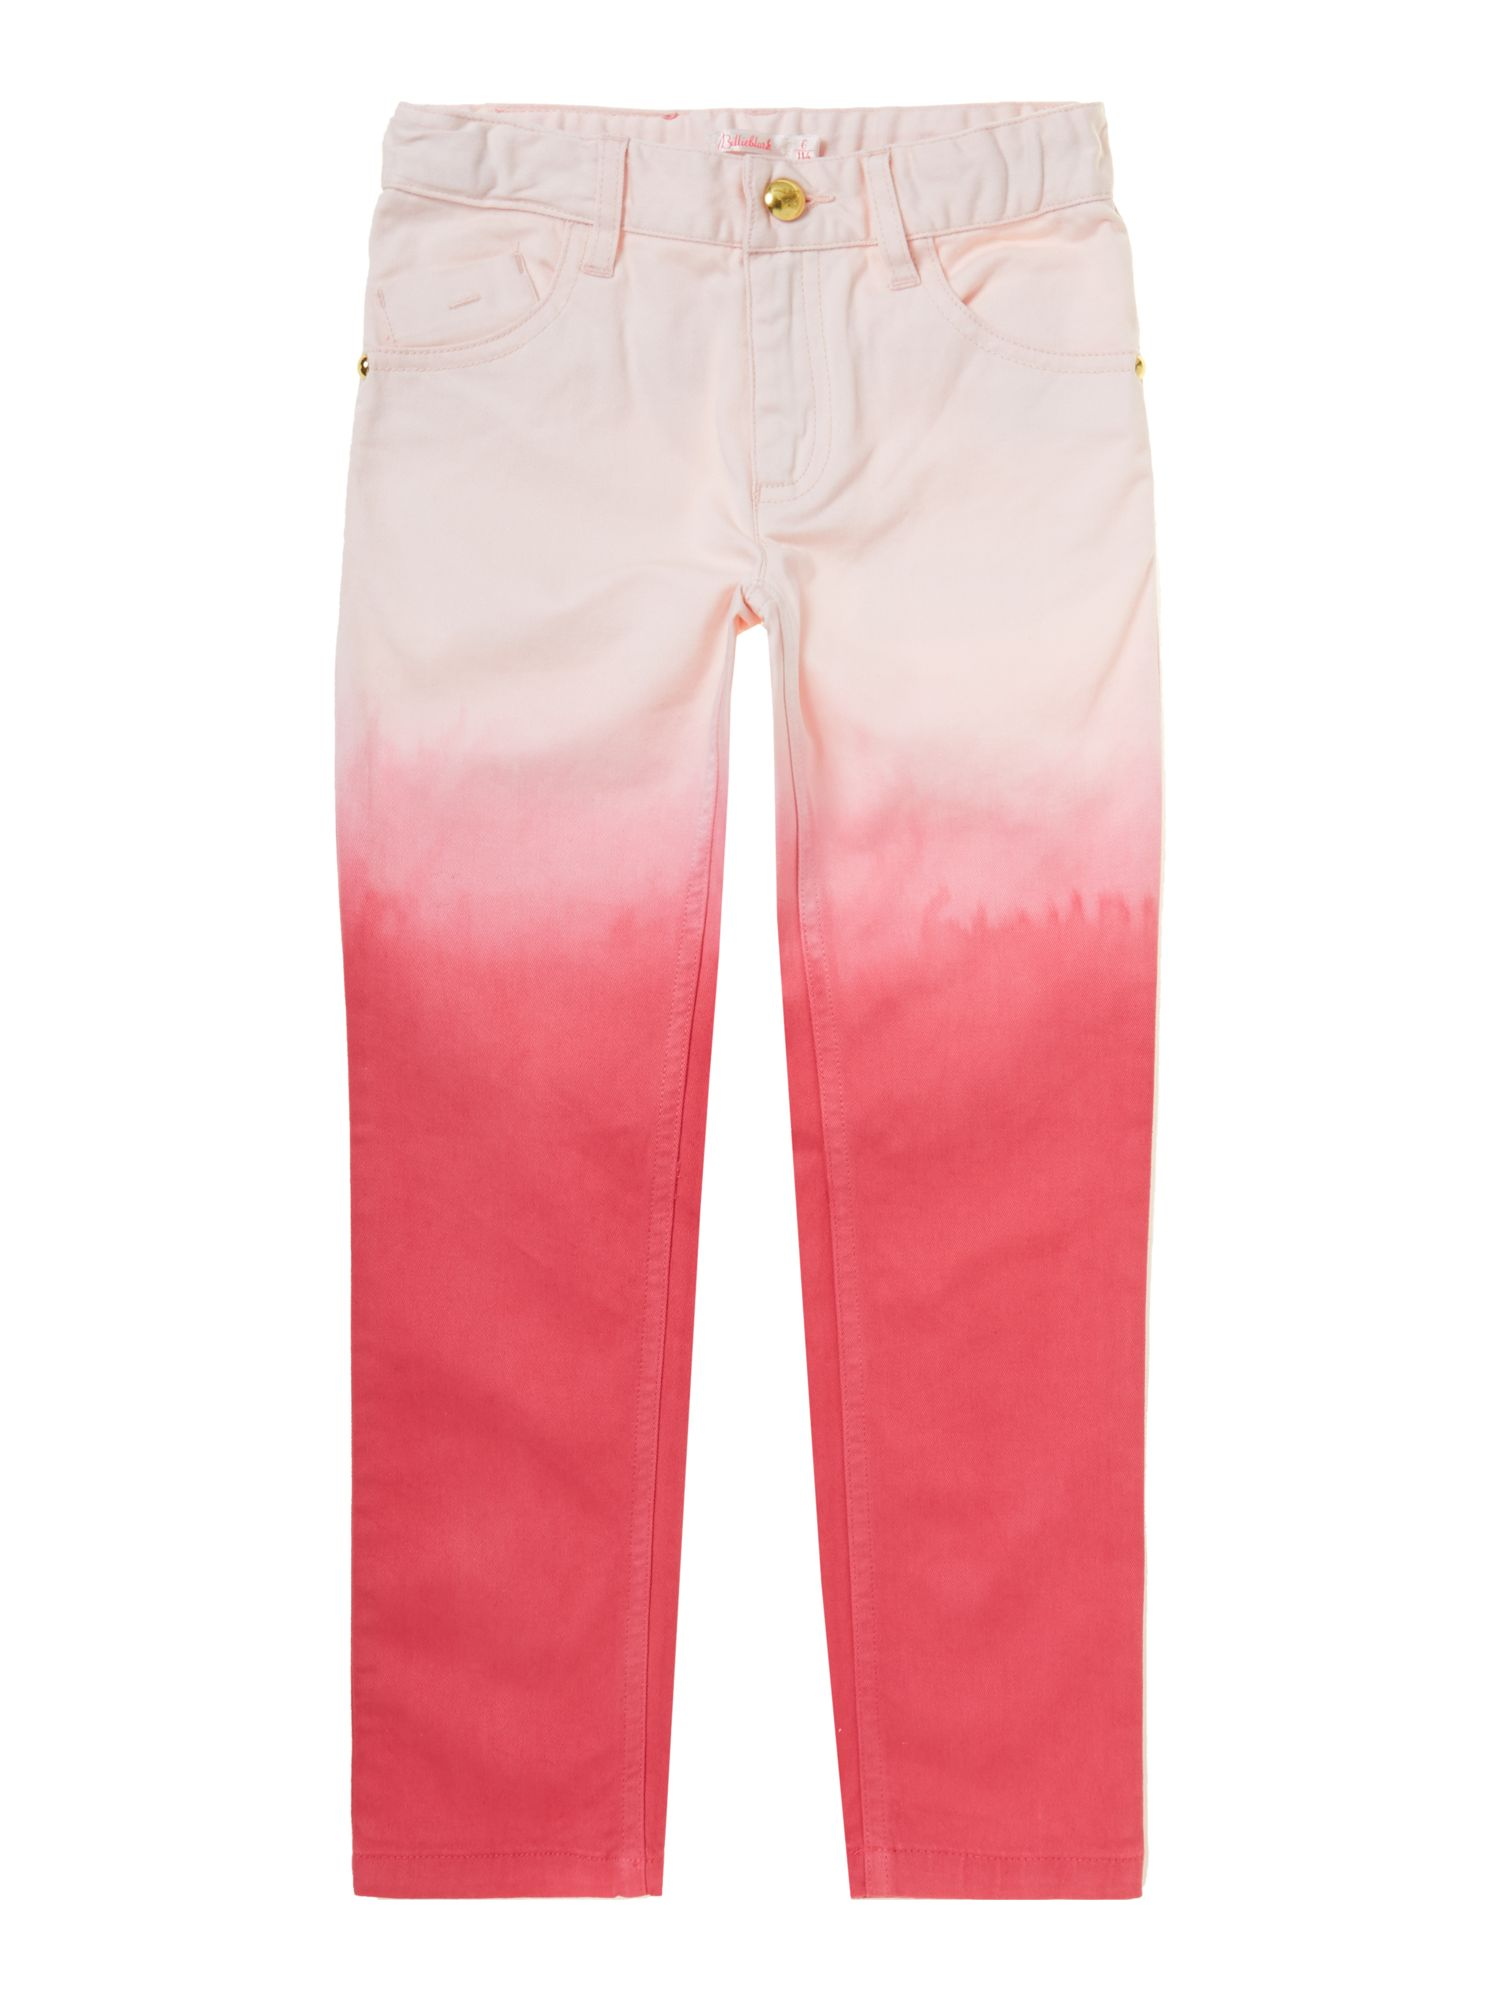 Girls drill trousers